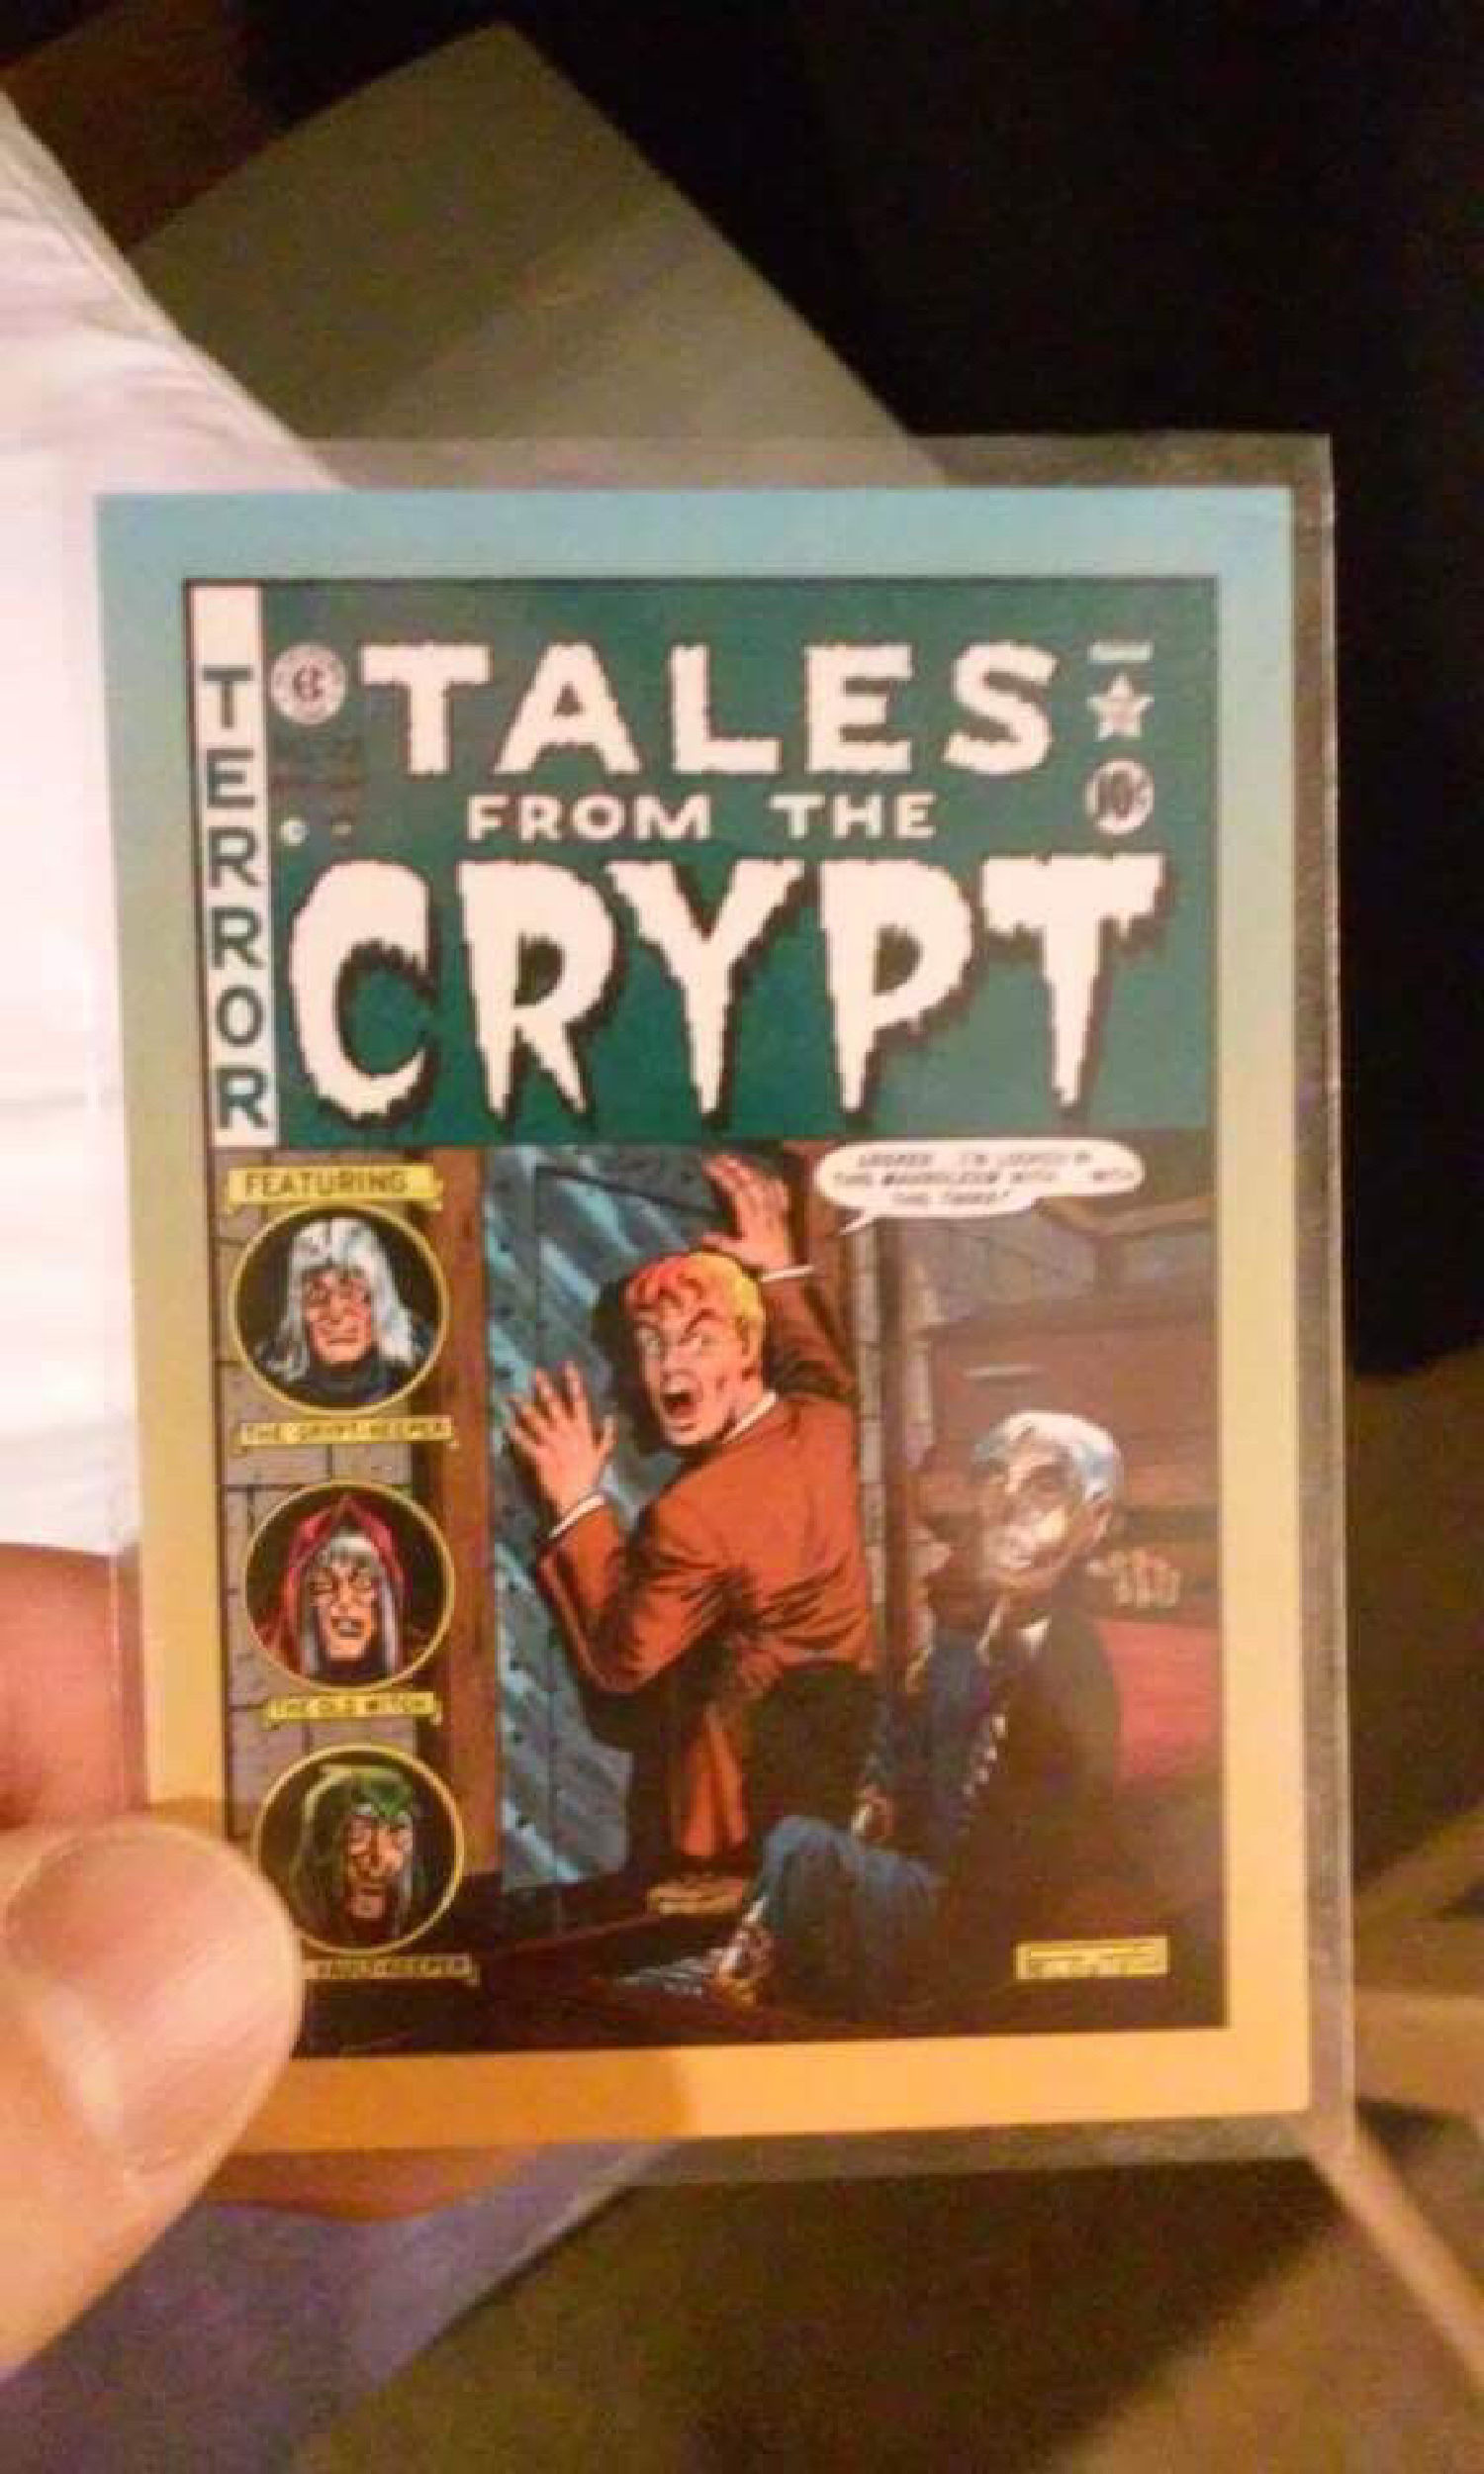 Comic cover art cards - Tales From The Crypt